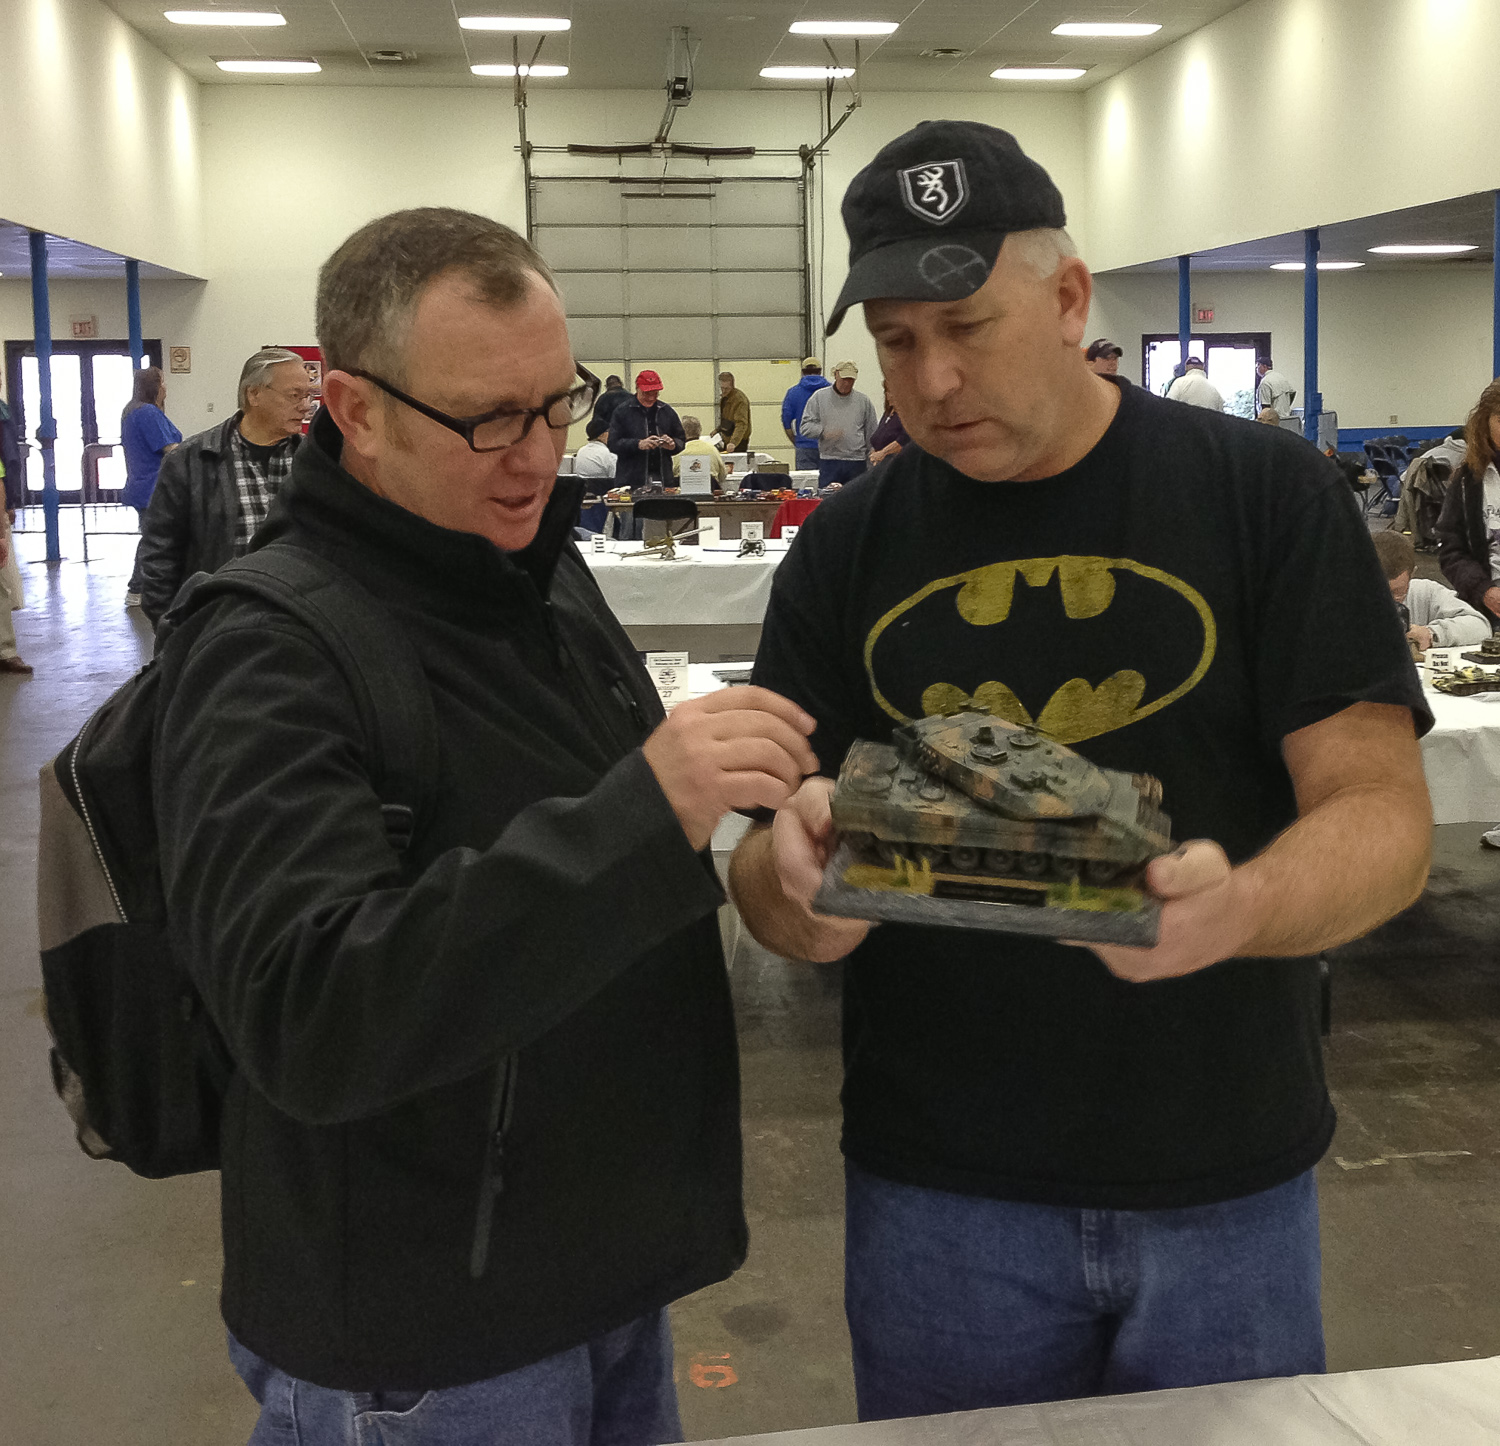 HRSM member Kevin Farris, right, shows off his Leopard tank to an interested ODO attendee. The model won a first in its category at the show.